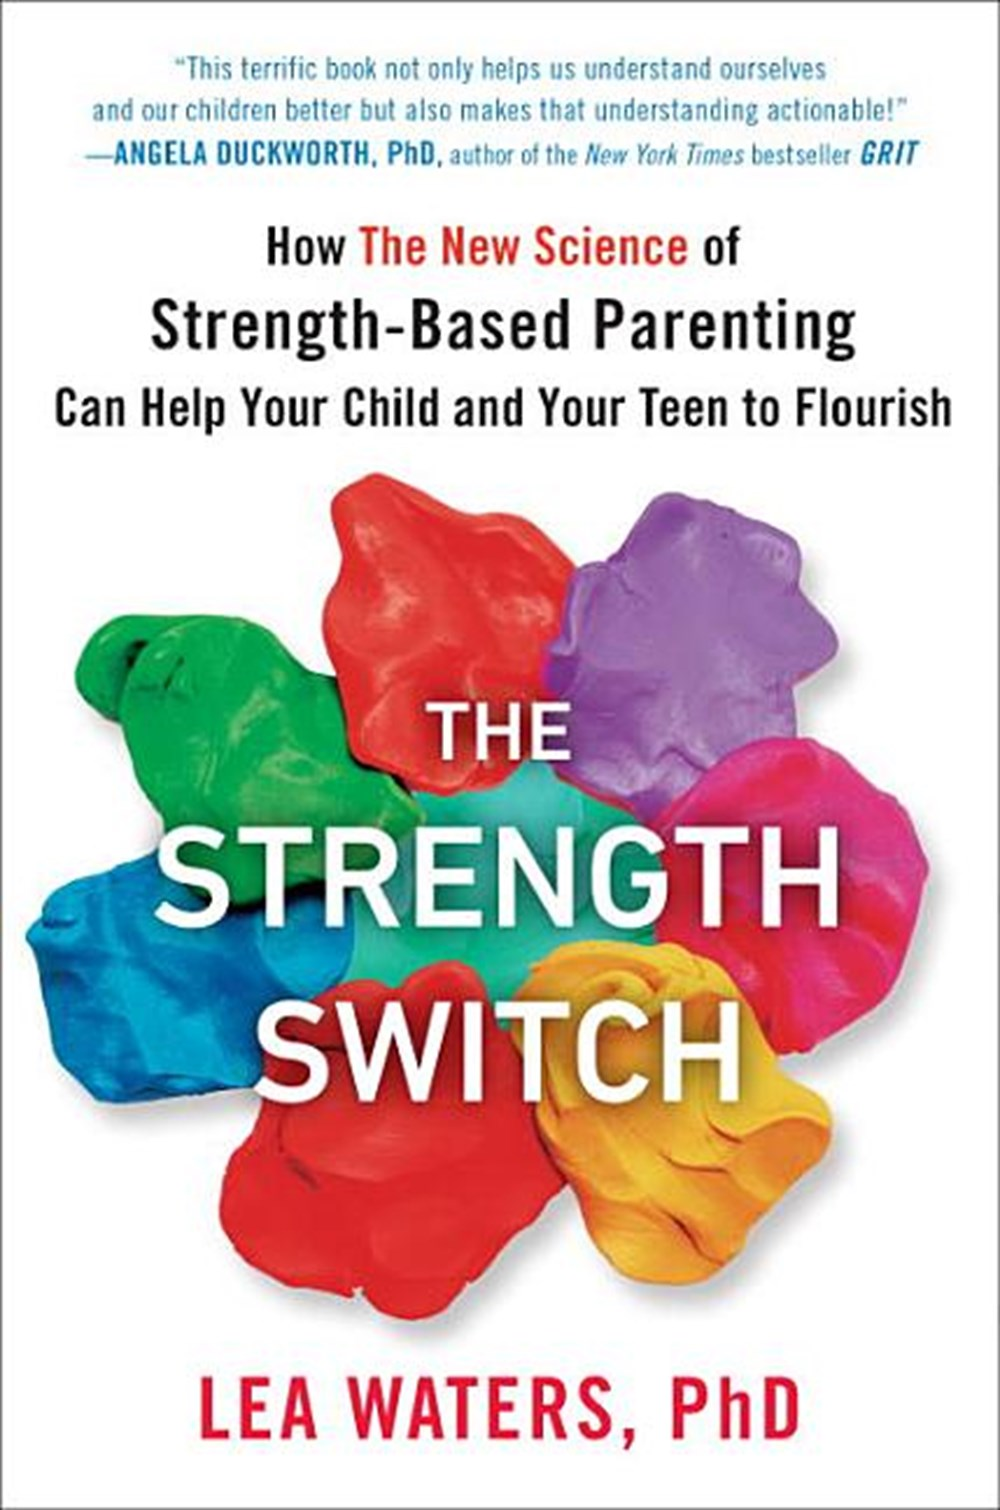 Strength Switch How the New Science of Strength-Based Parenting Can Help Your Child and Your Teen to